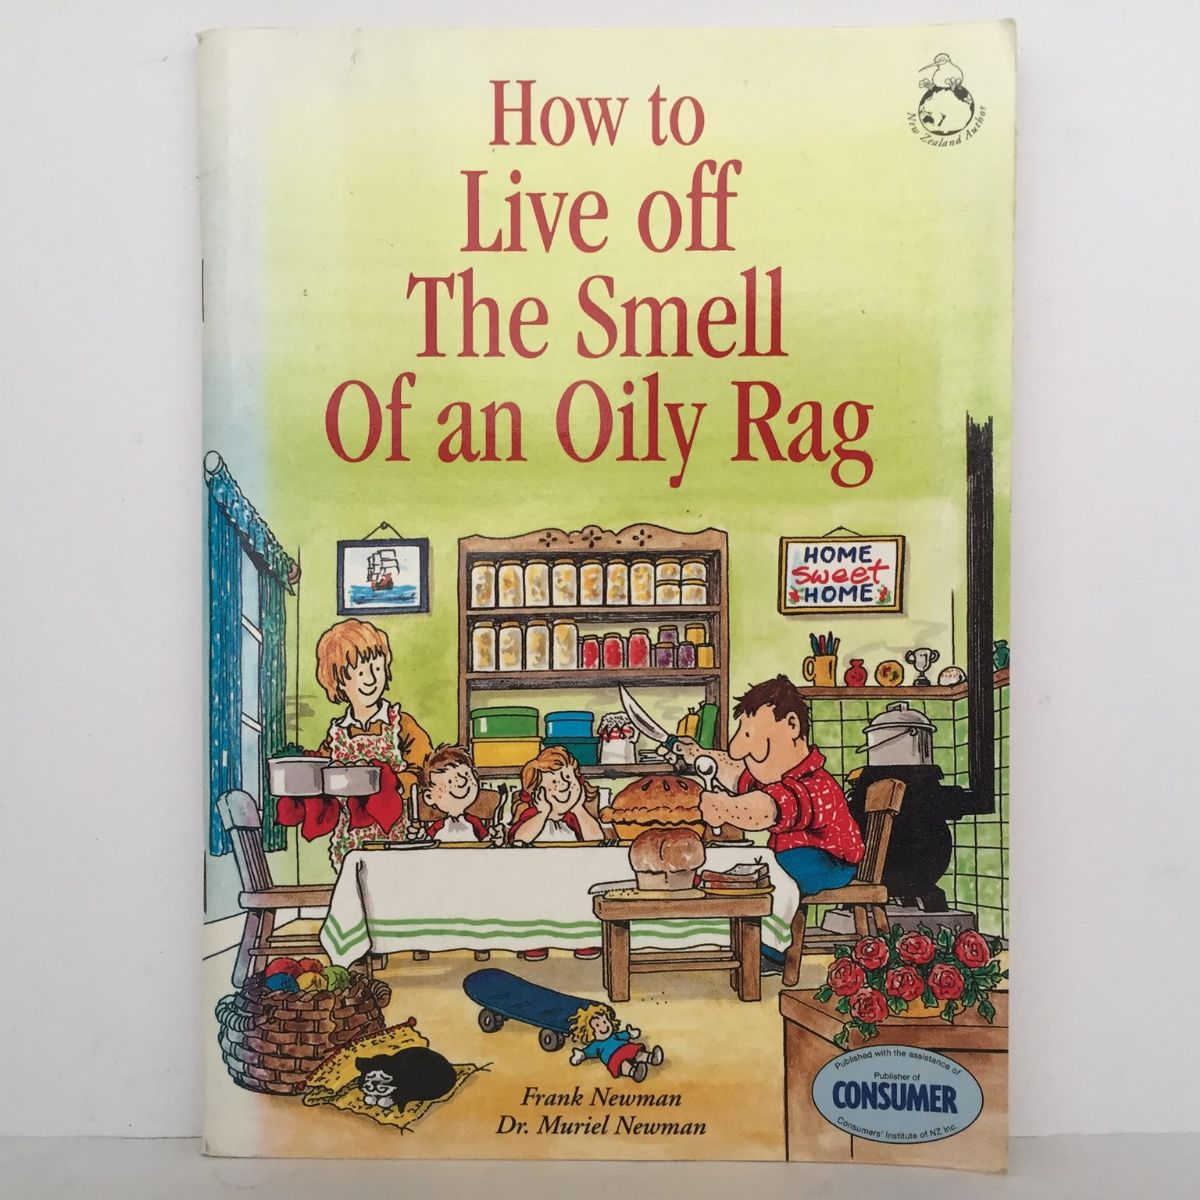 How to Live off The Smell Of an Oily Rag